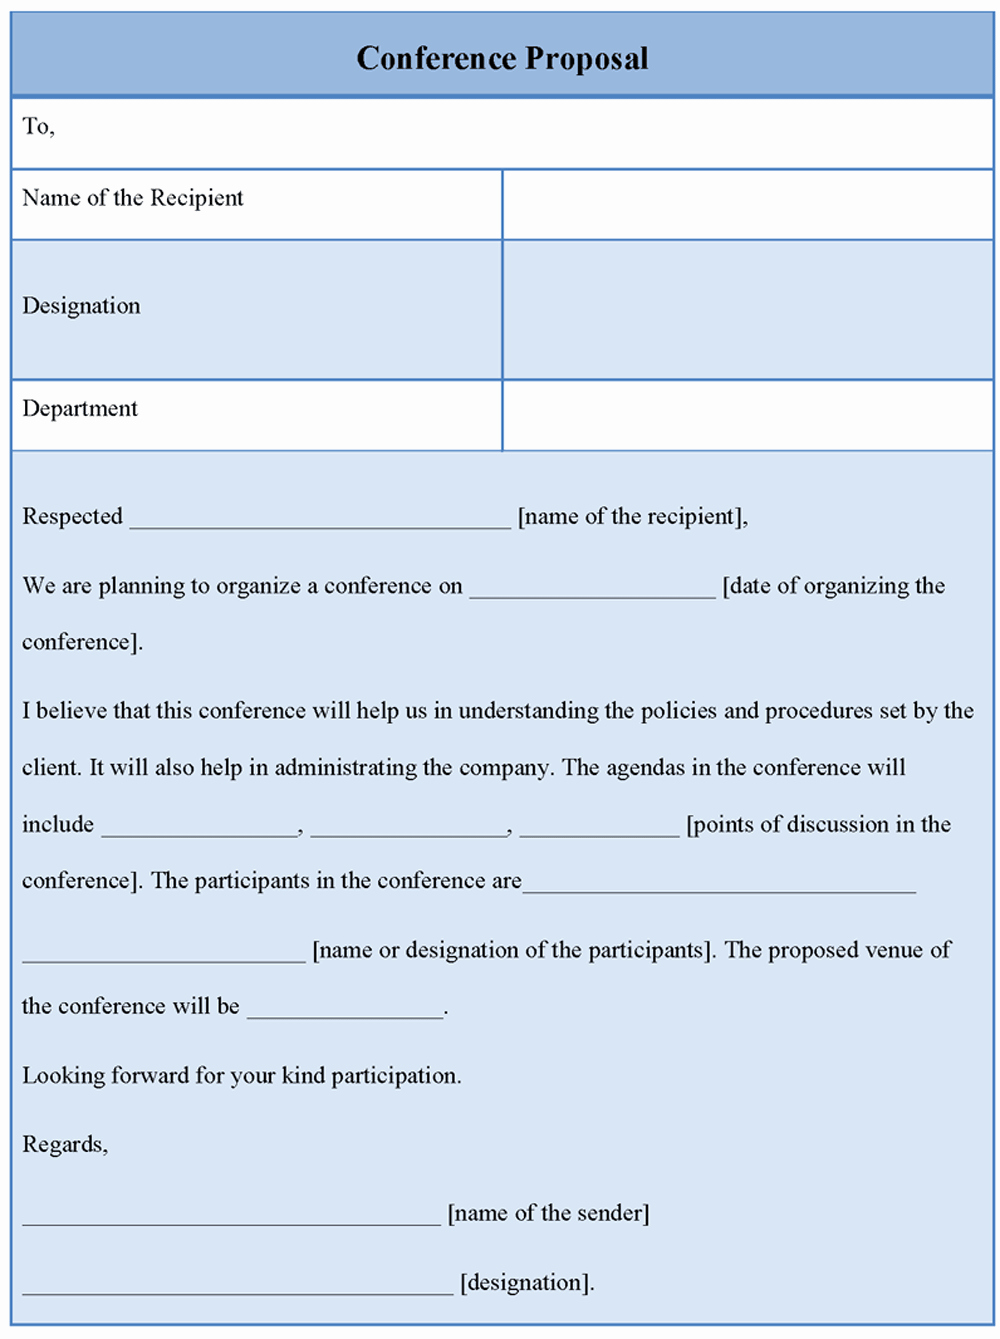 Meeting Rfp Template Unique Proposal Template for Conference Example Of Conference